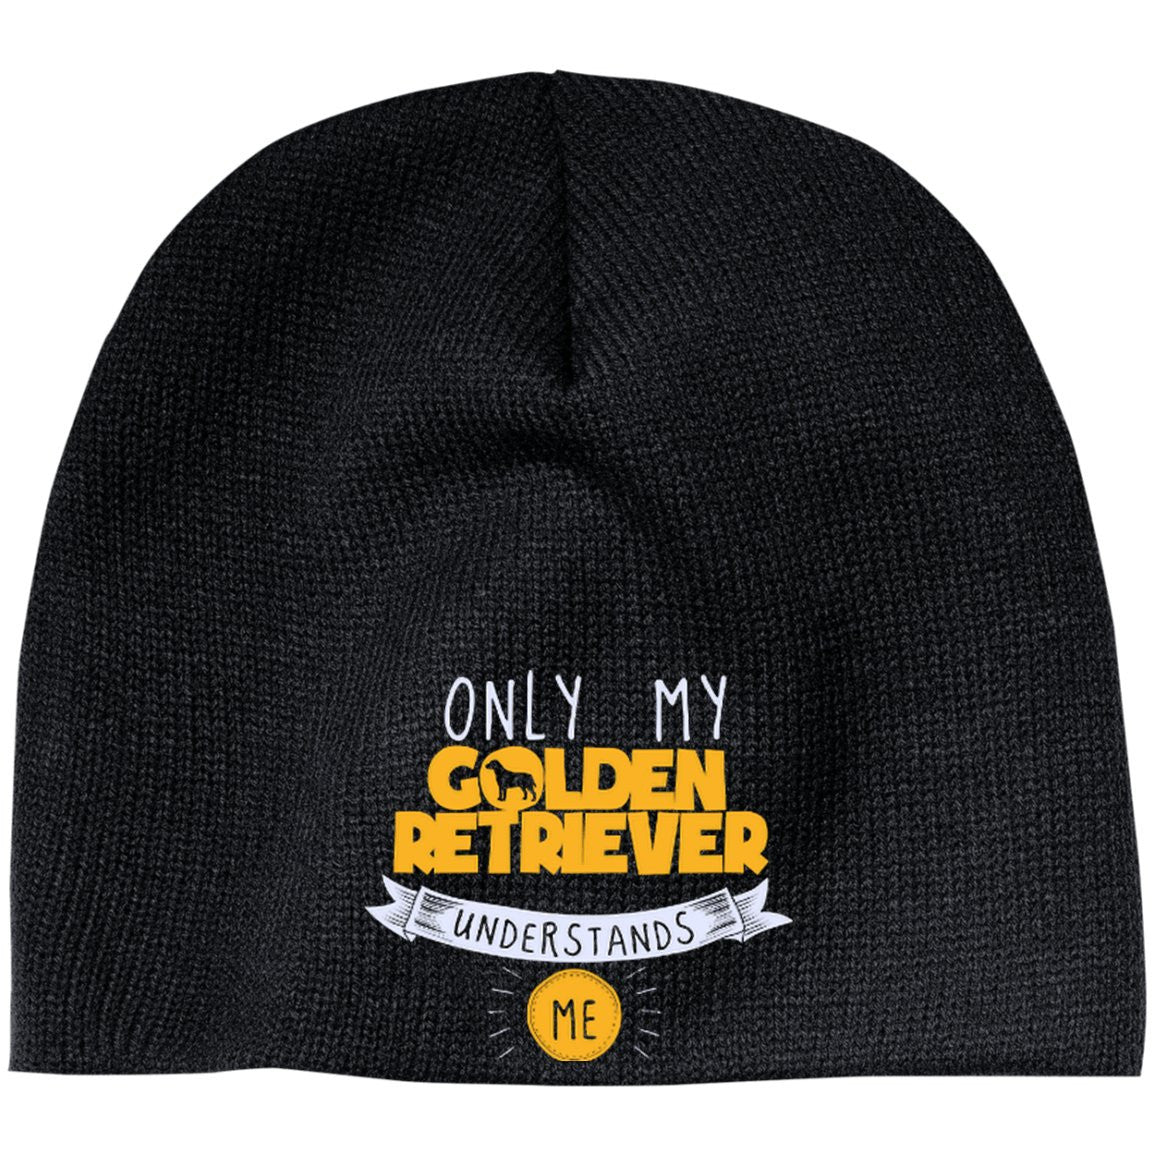 Only My Golden Retriever Understands Me Yellow - Beanie (Embroidered)